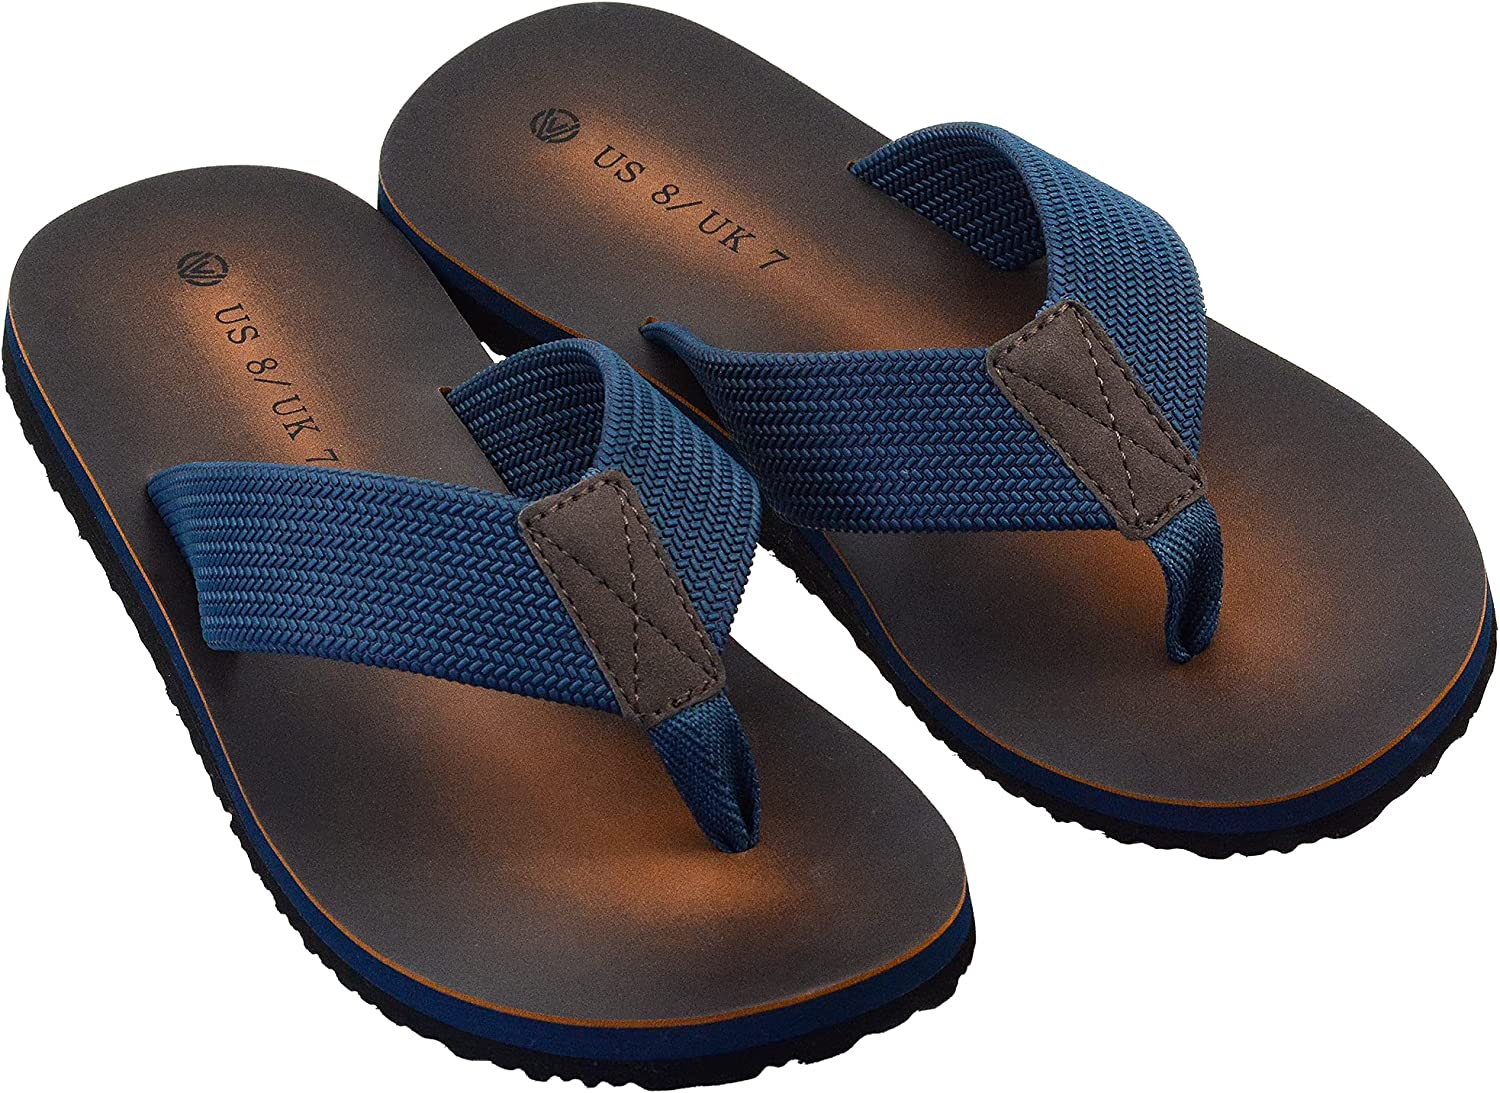 LseLom Mens Flip Flop Sandals with Thongs Strap Comfortable Arch Support & Non Skid Rubber Sole Summer Slippers